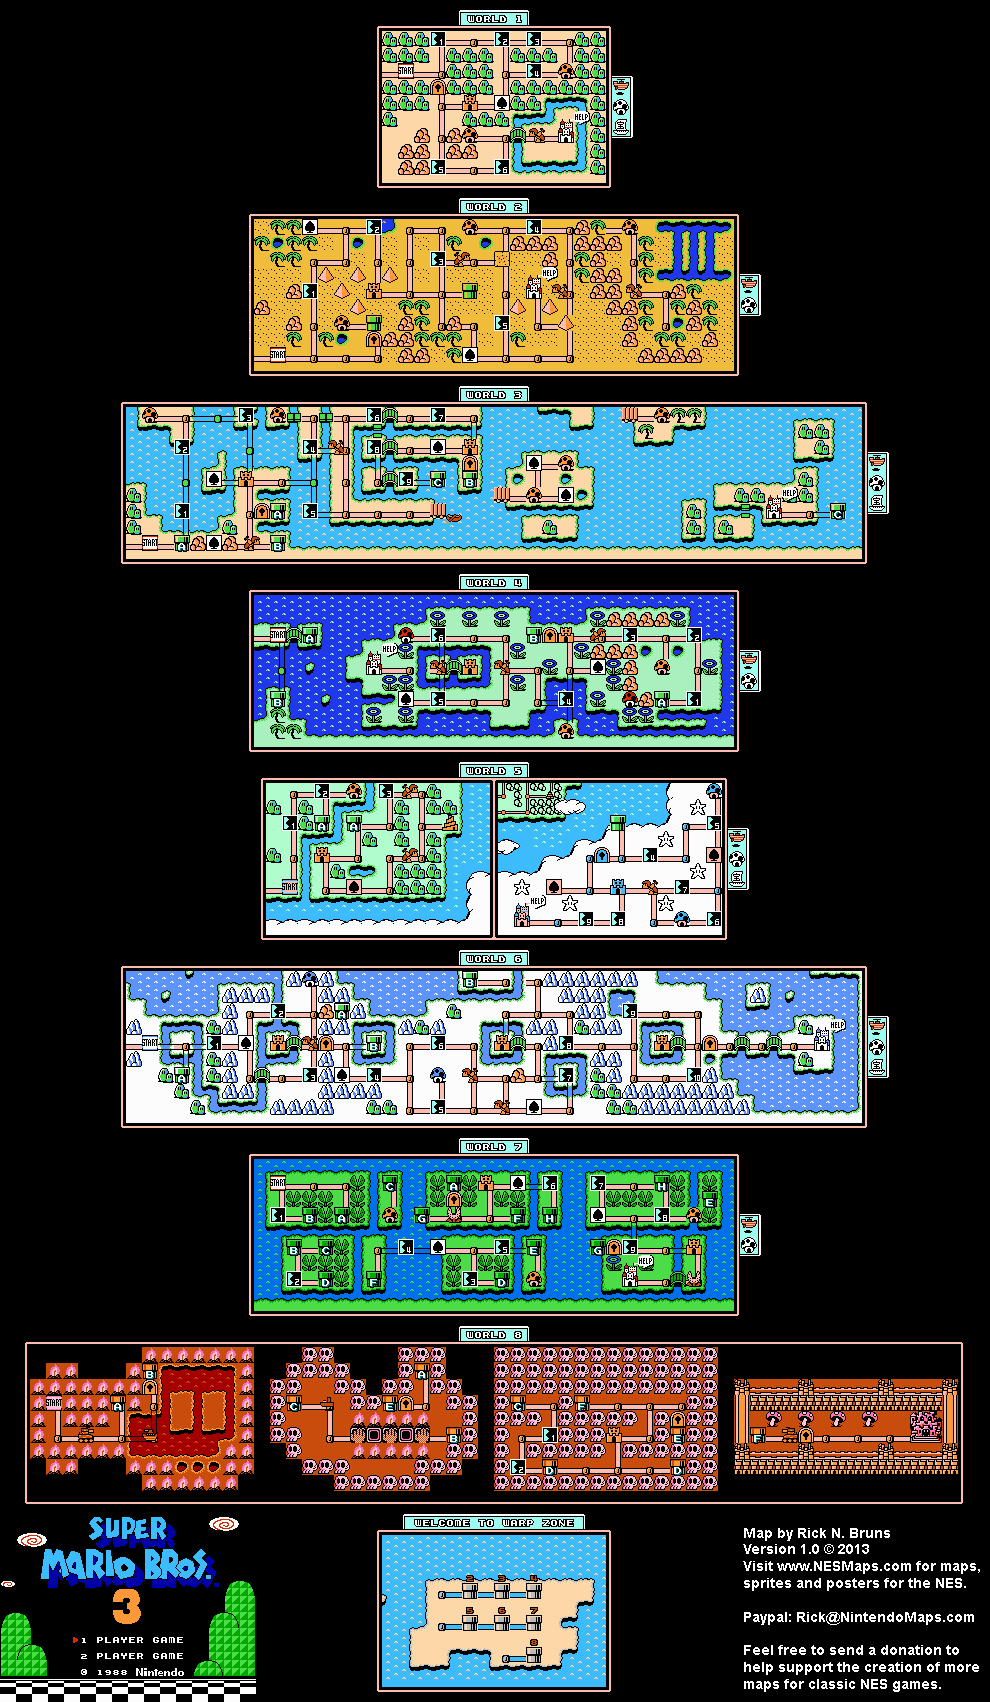 Super mario bros 3 overworld maps mario pinterest videojuegos super mario bros 3 overworld maps gumiabroncs